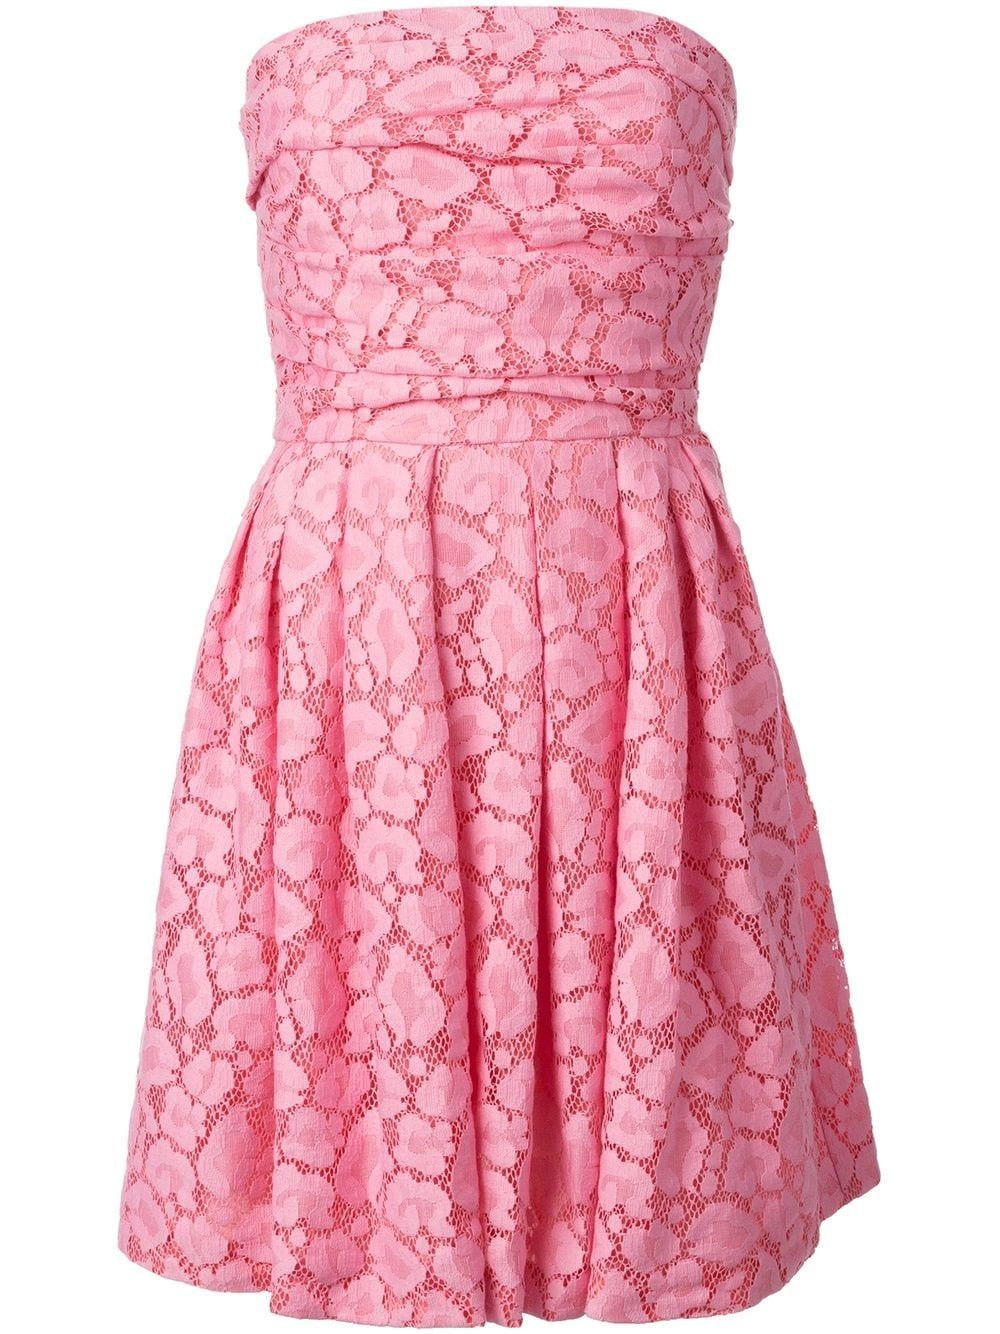 Moschino Cheap & Chic strapless lace dress - PINK #rosaspitzenkleider